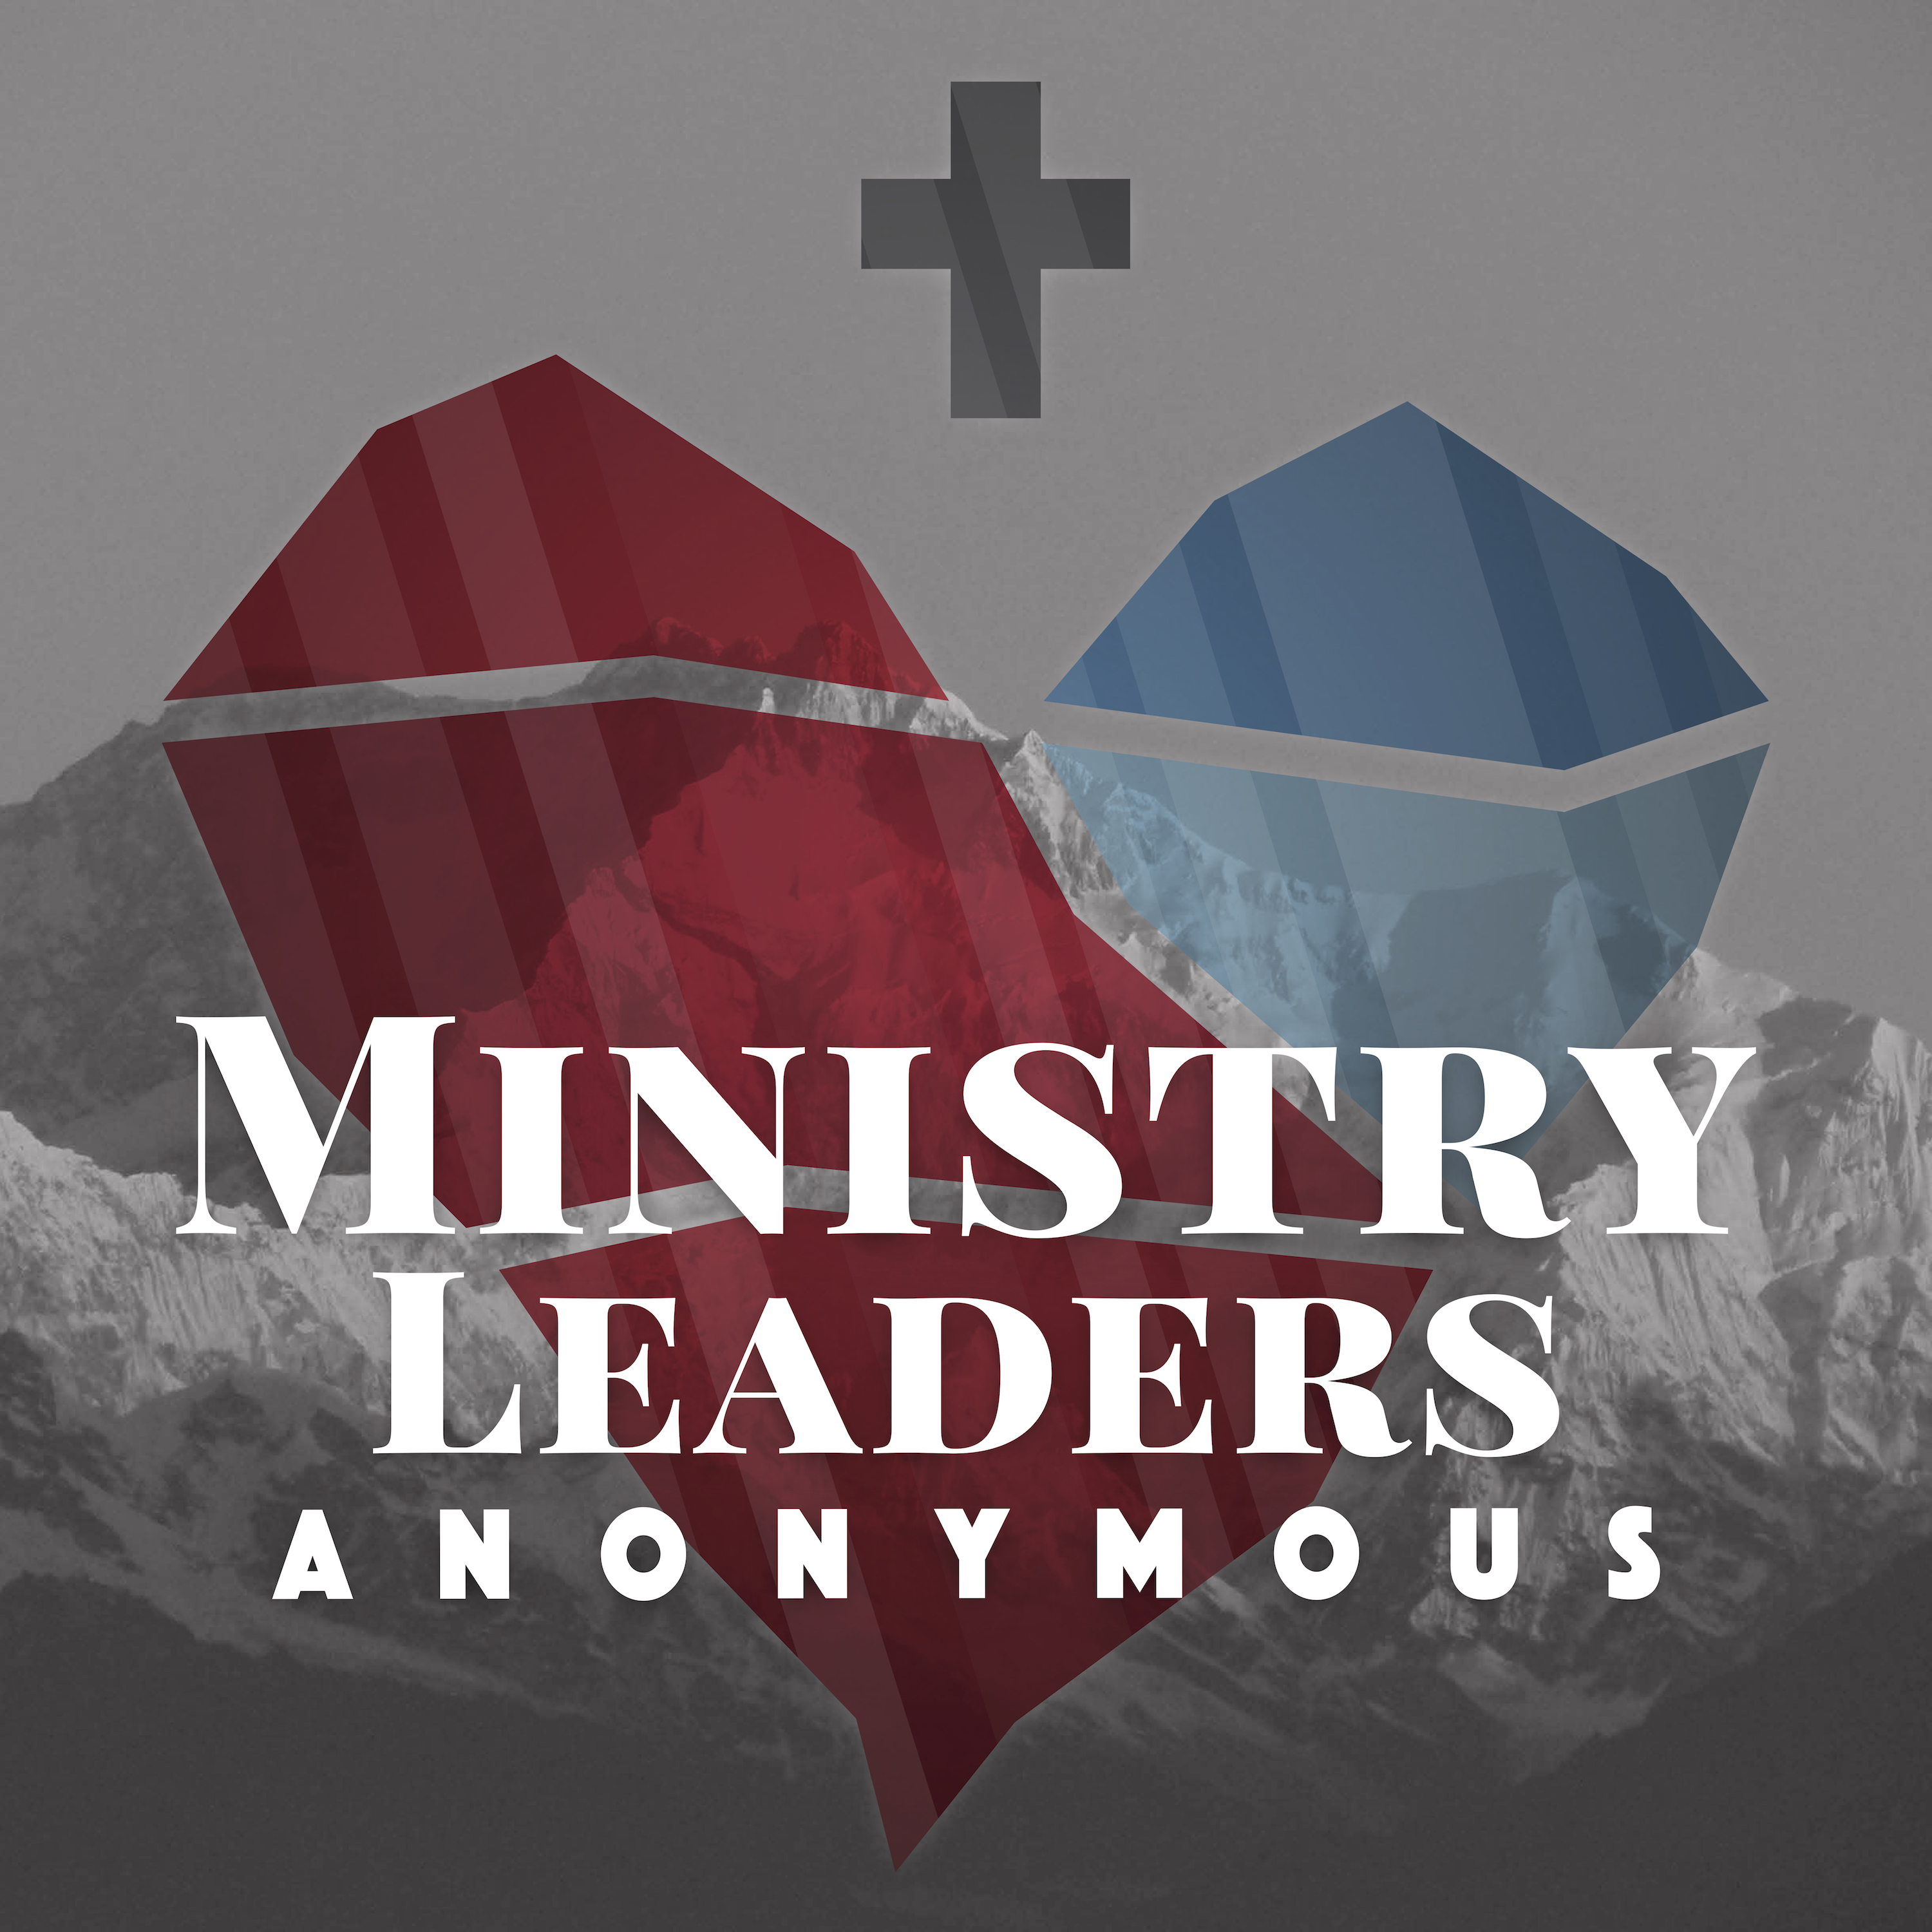 Ministry Leaders Anonymous